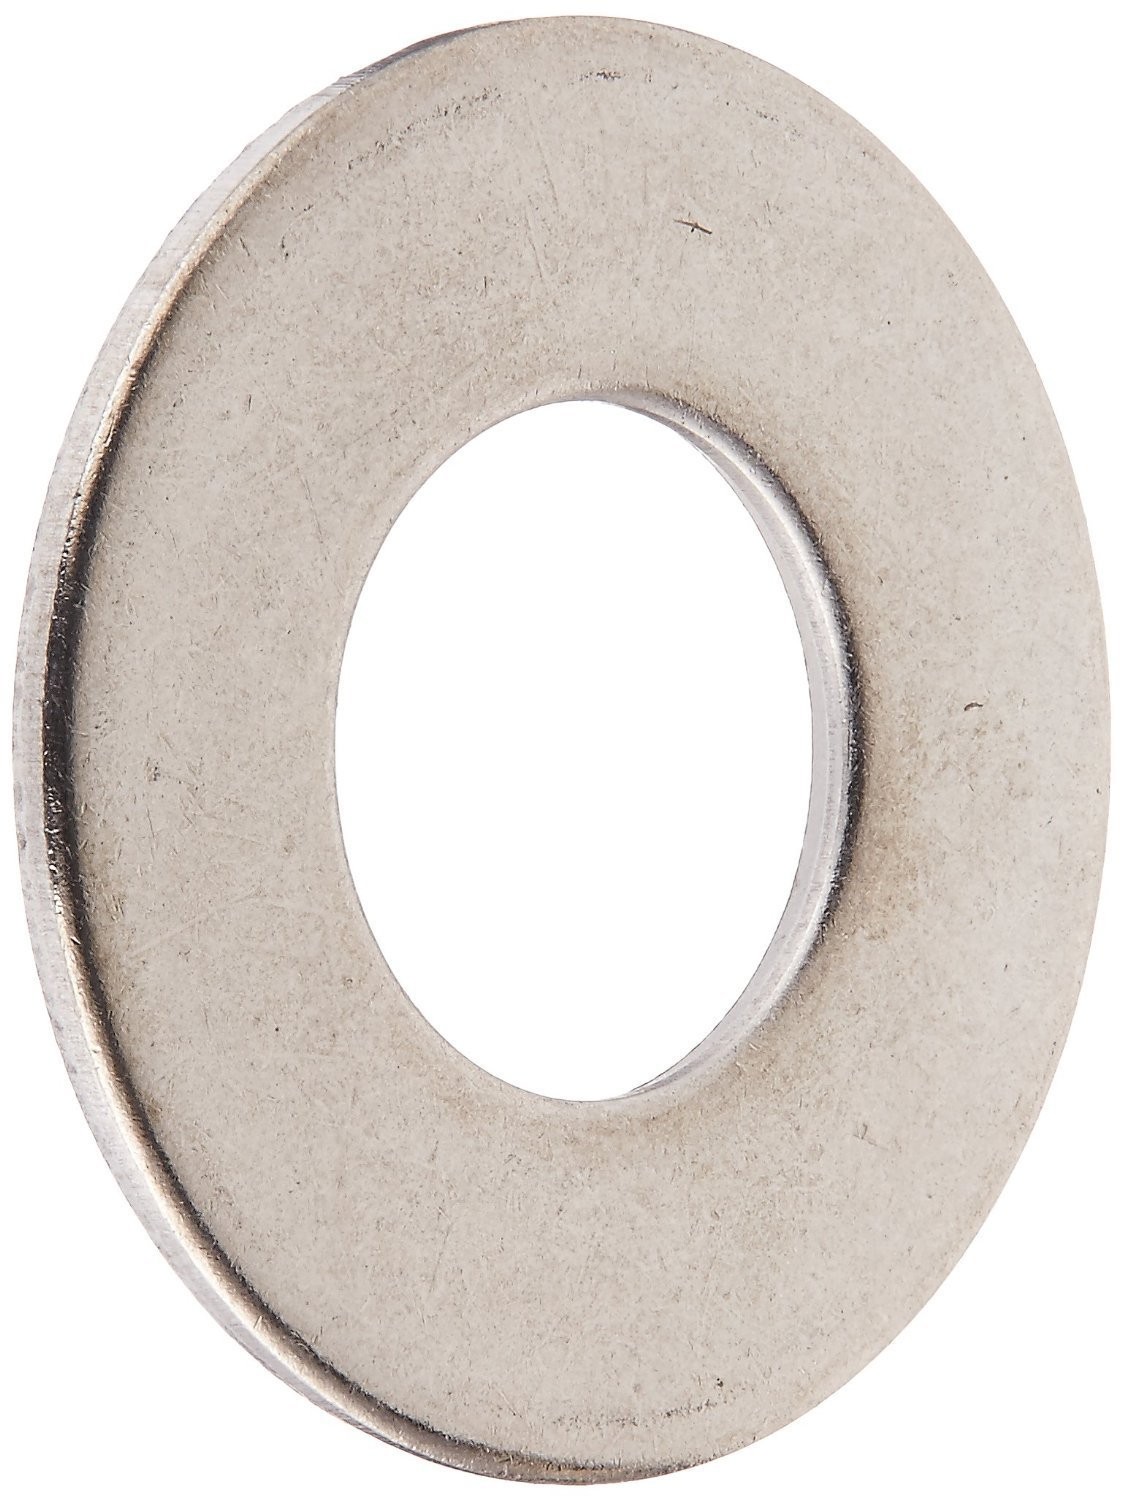 The Hillman Group 830506 Stainless Steel 3/8-Inch Flat Washer (2 Packs of 100)